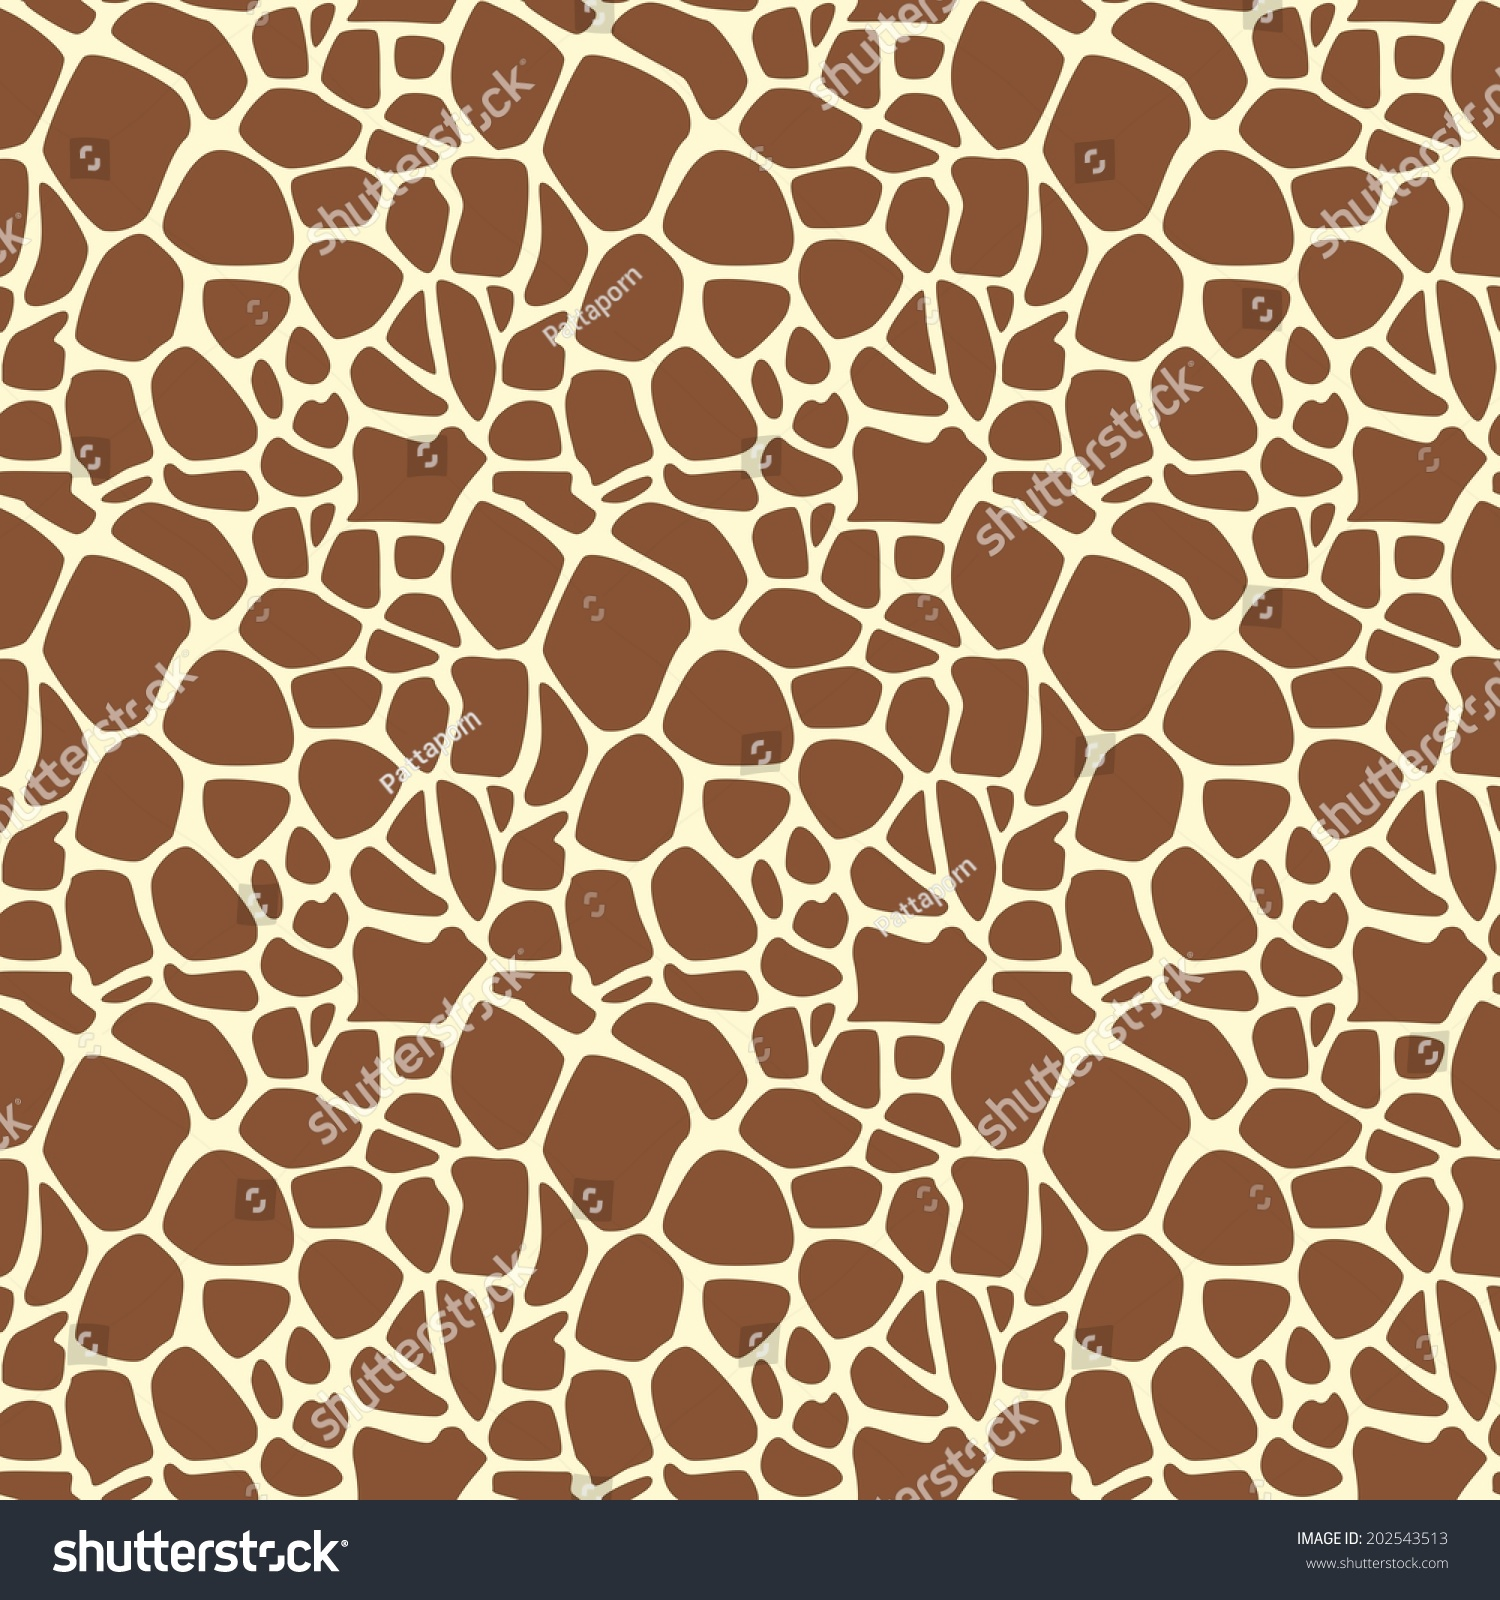 animal skin patterns seamless - photo #31